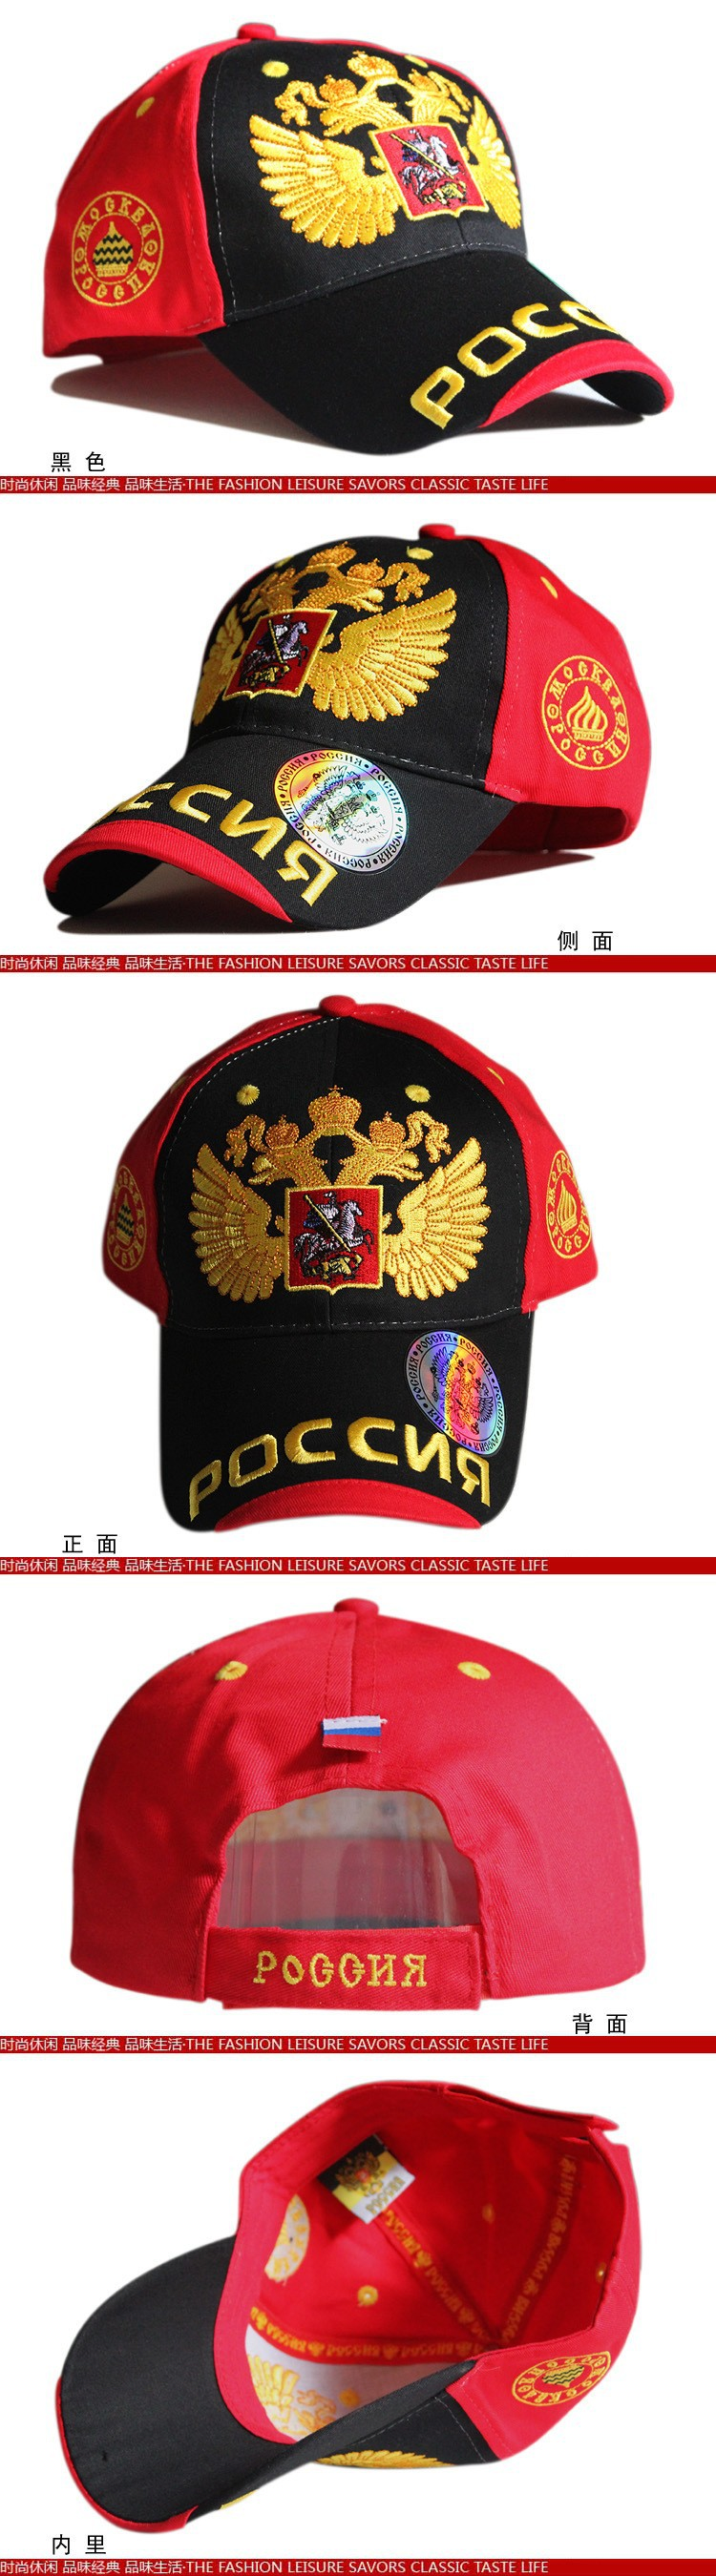 HT1 M3JFN0XXXagOFbXU - New Fashion sochi Russian Cap Russia bosco baseball cap snapback hat sunbonnet sports cap for man woman hip hop